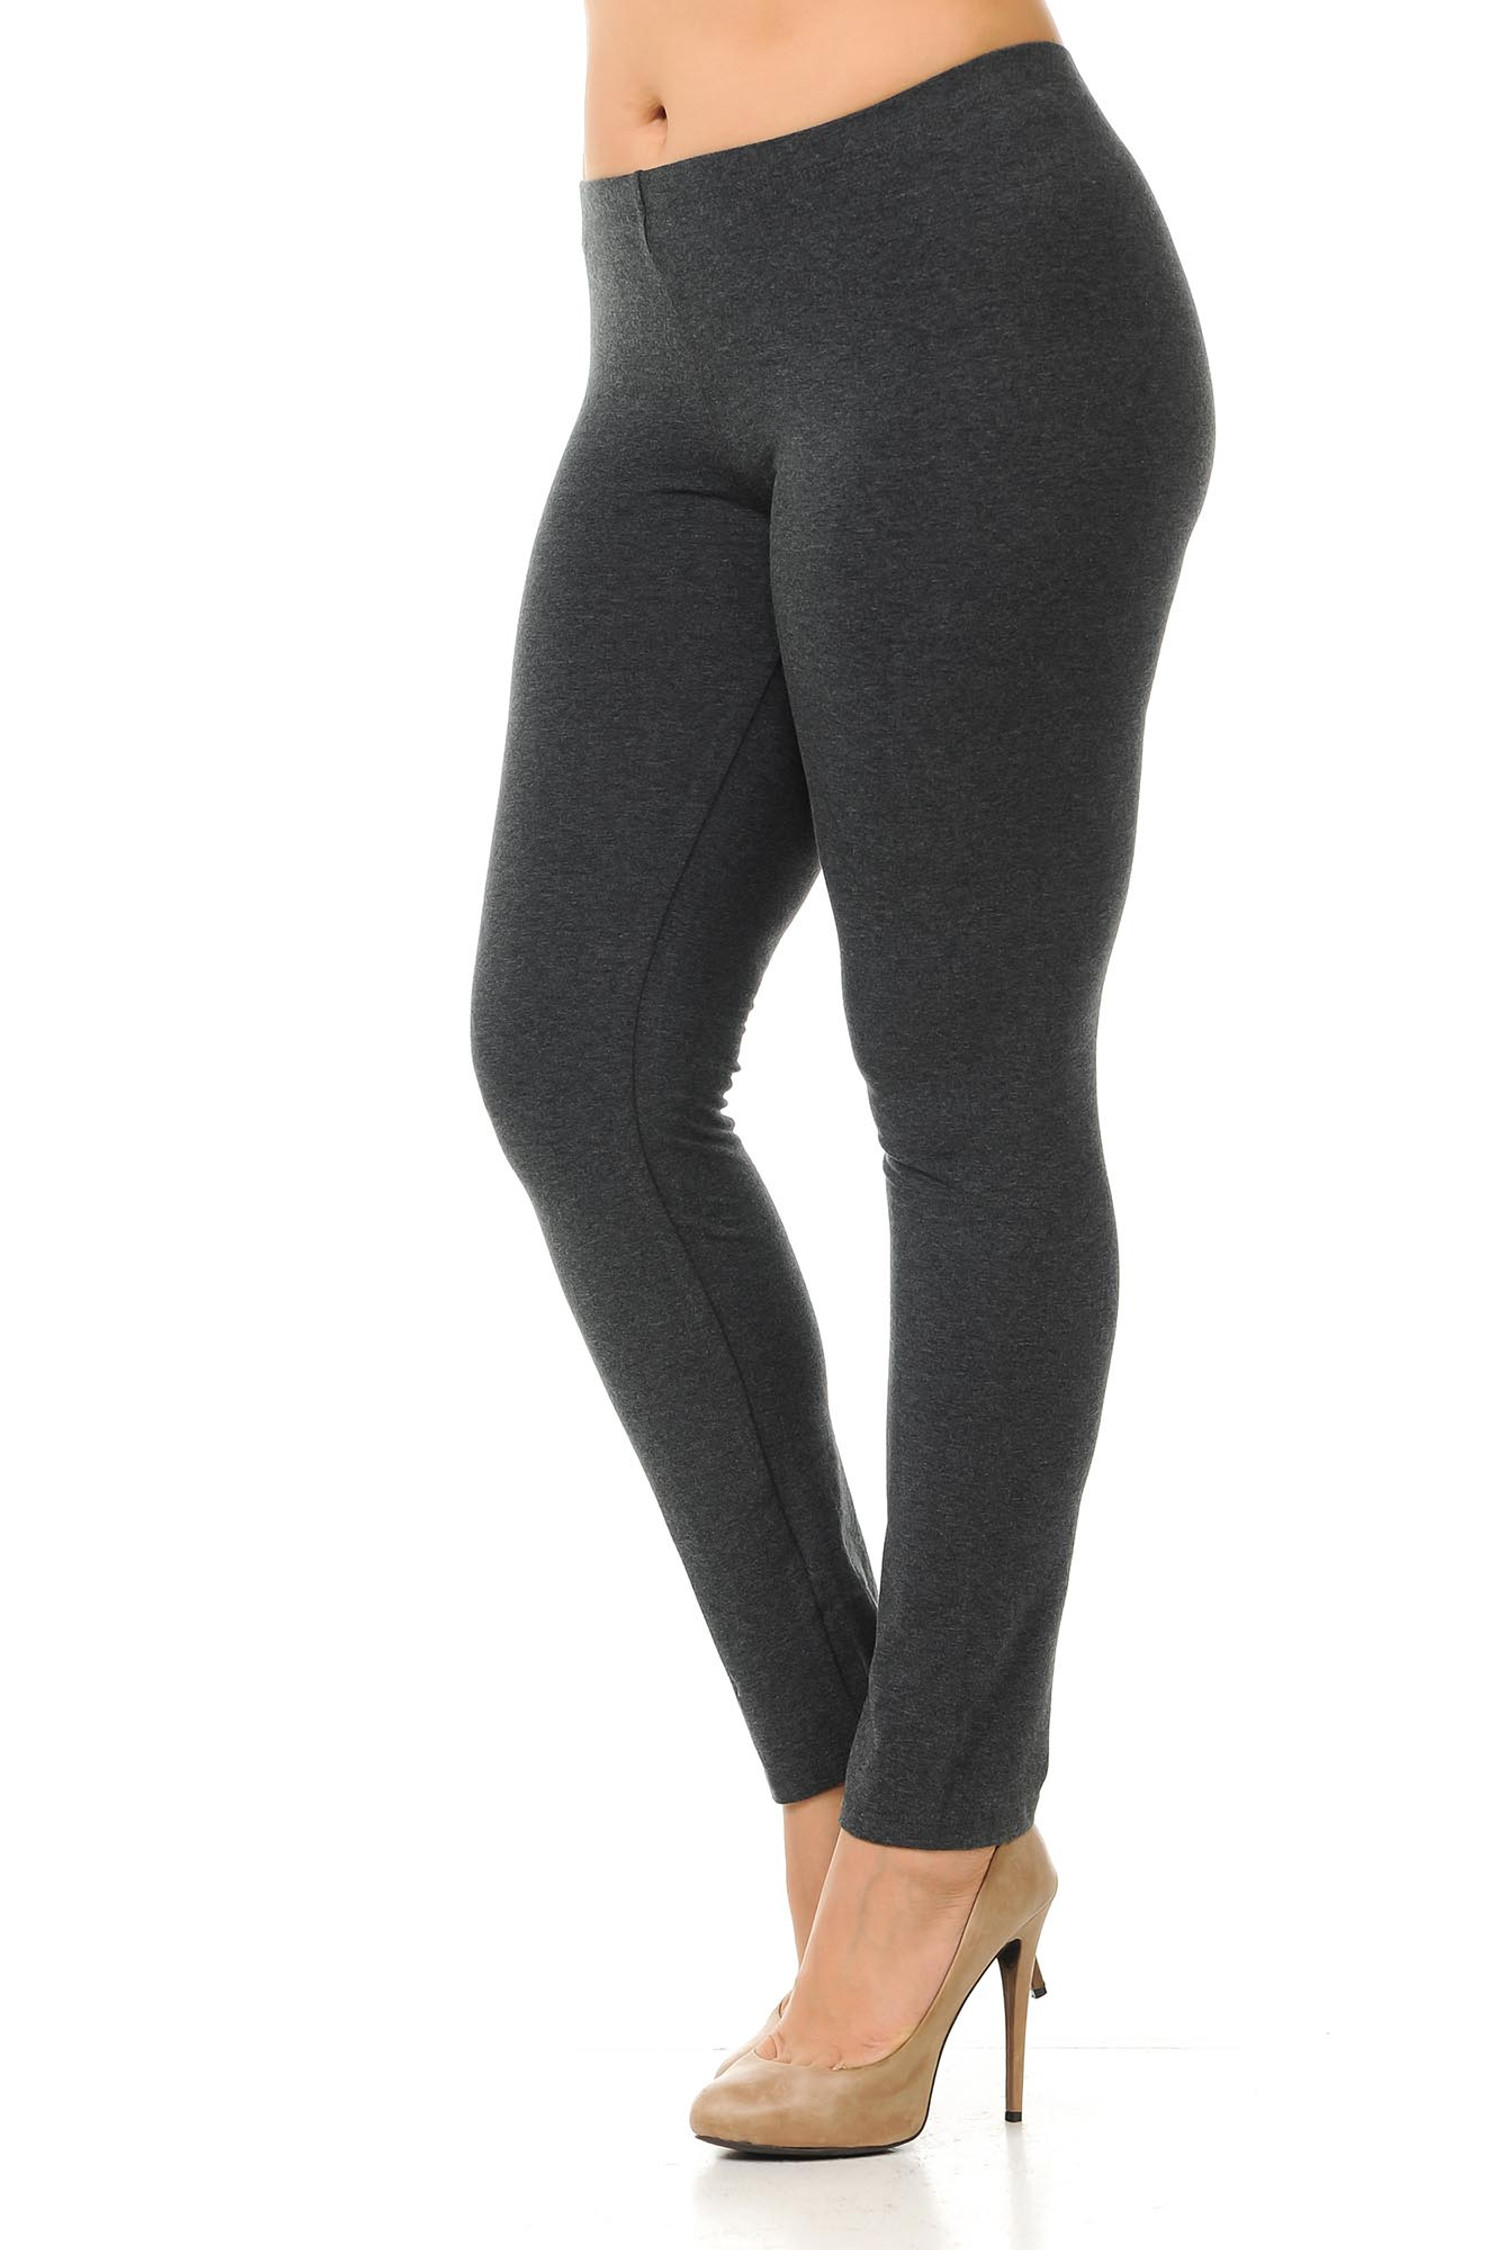 45 degree angled view of charcoal plus size qUSA Cotton Full Length Leggings